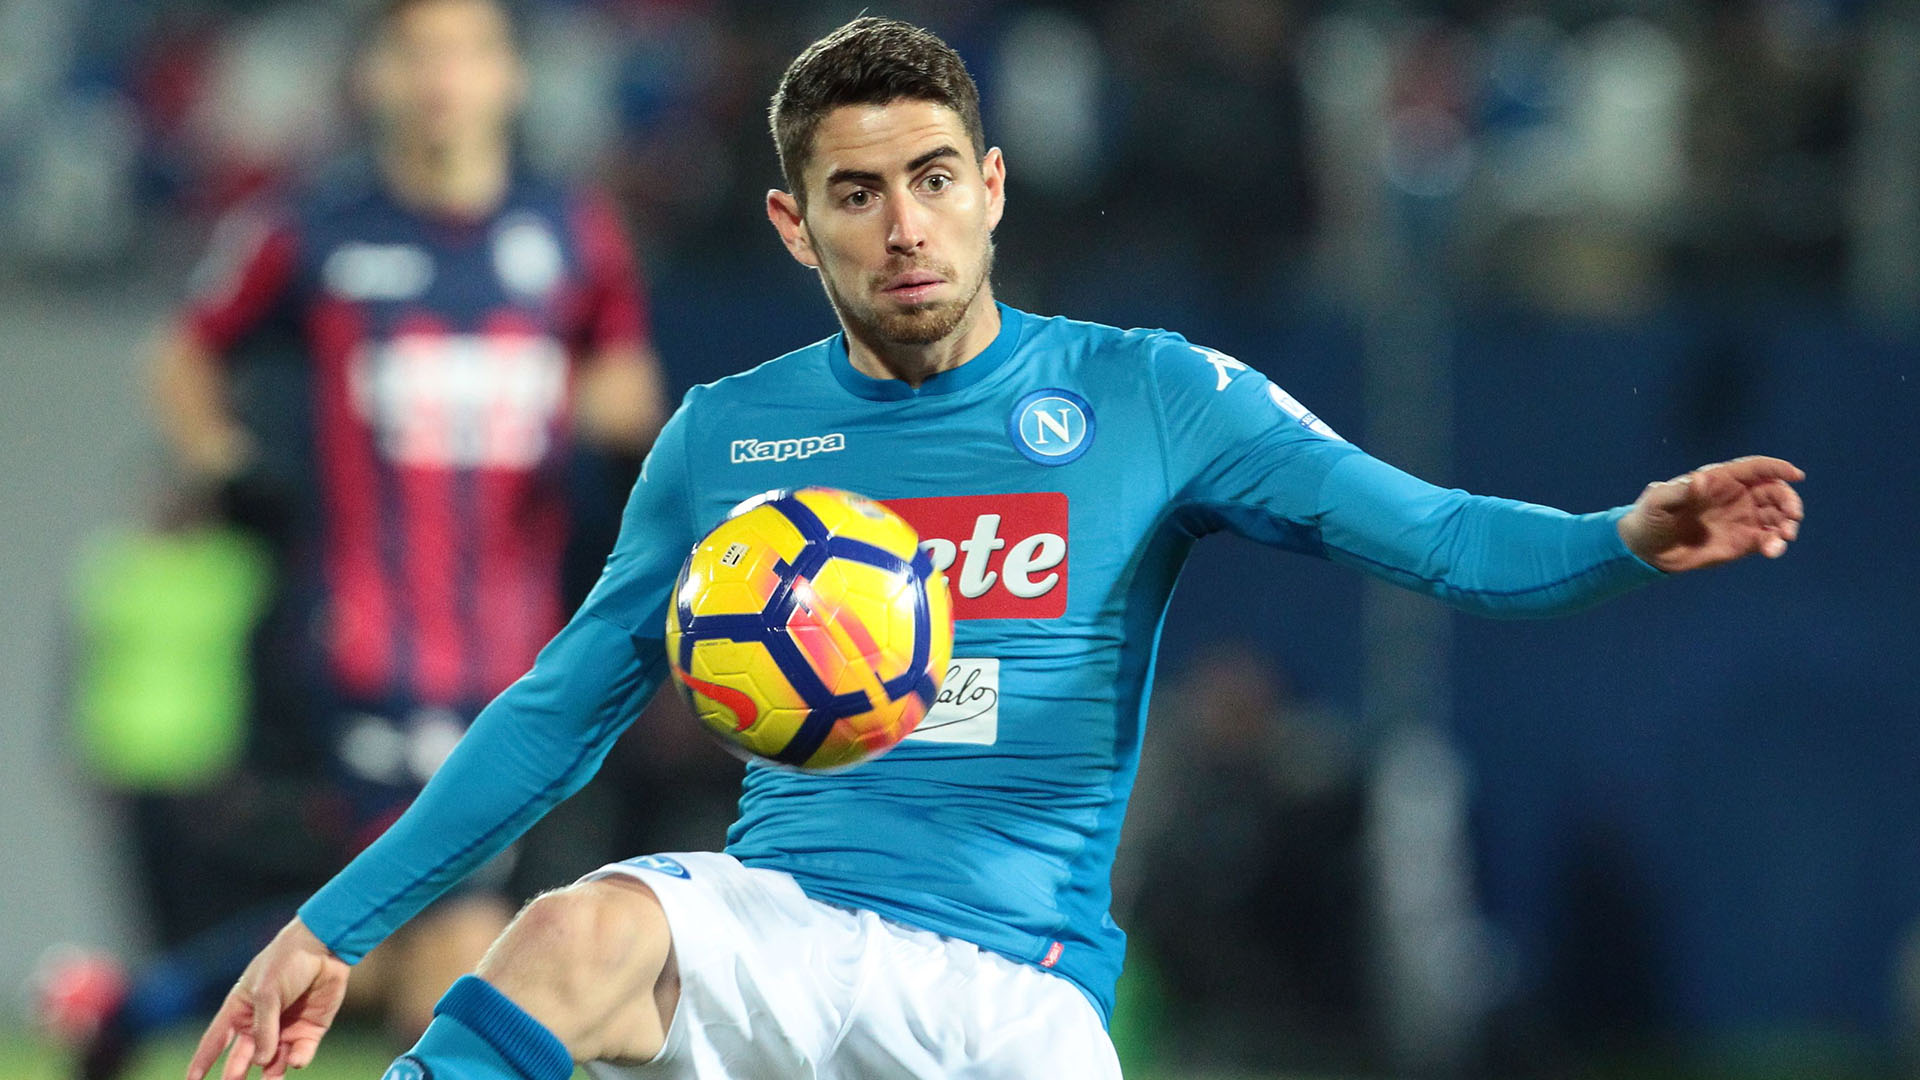 Jorginho's agent claims no Man Utd contract ahead of summer scramble for midfielder